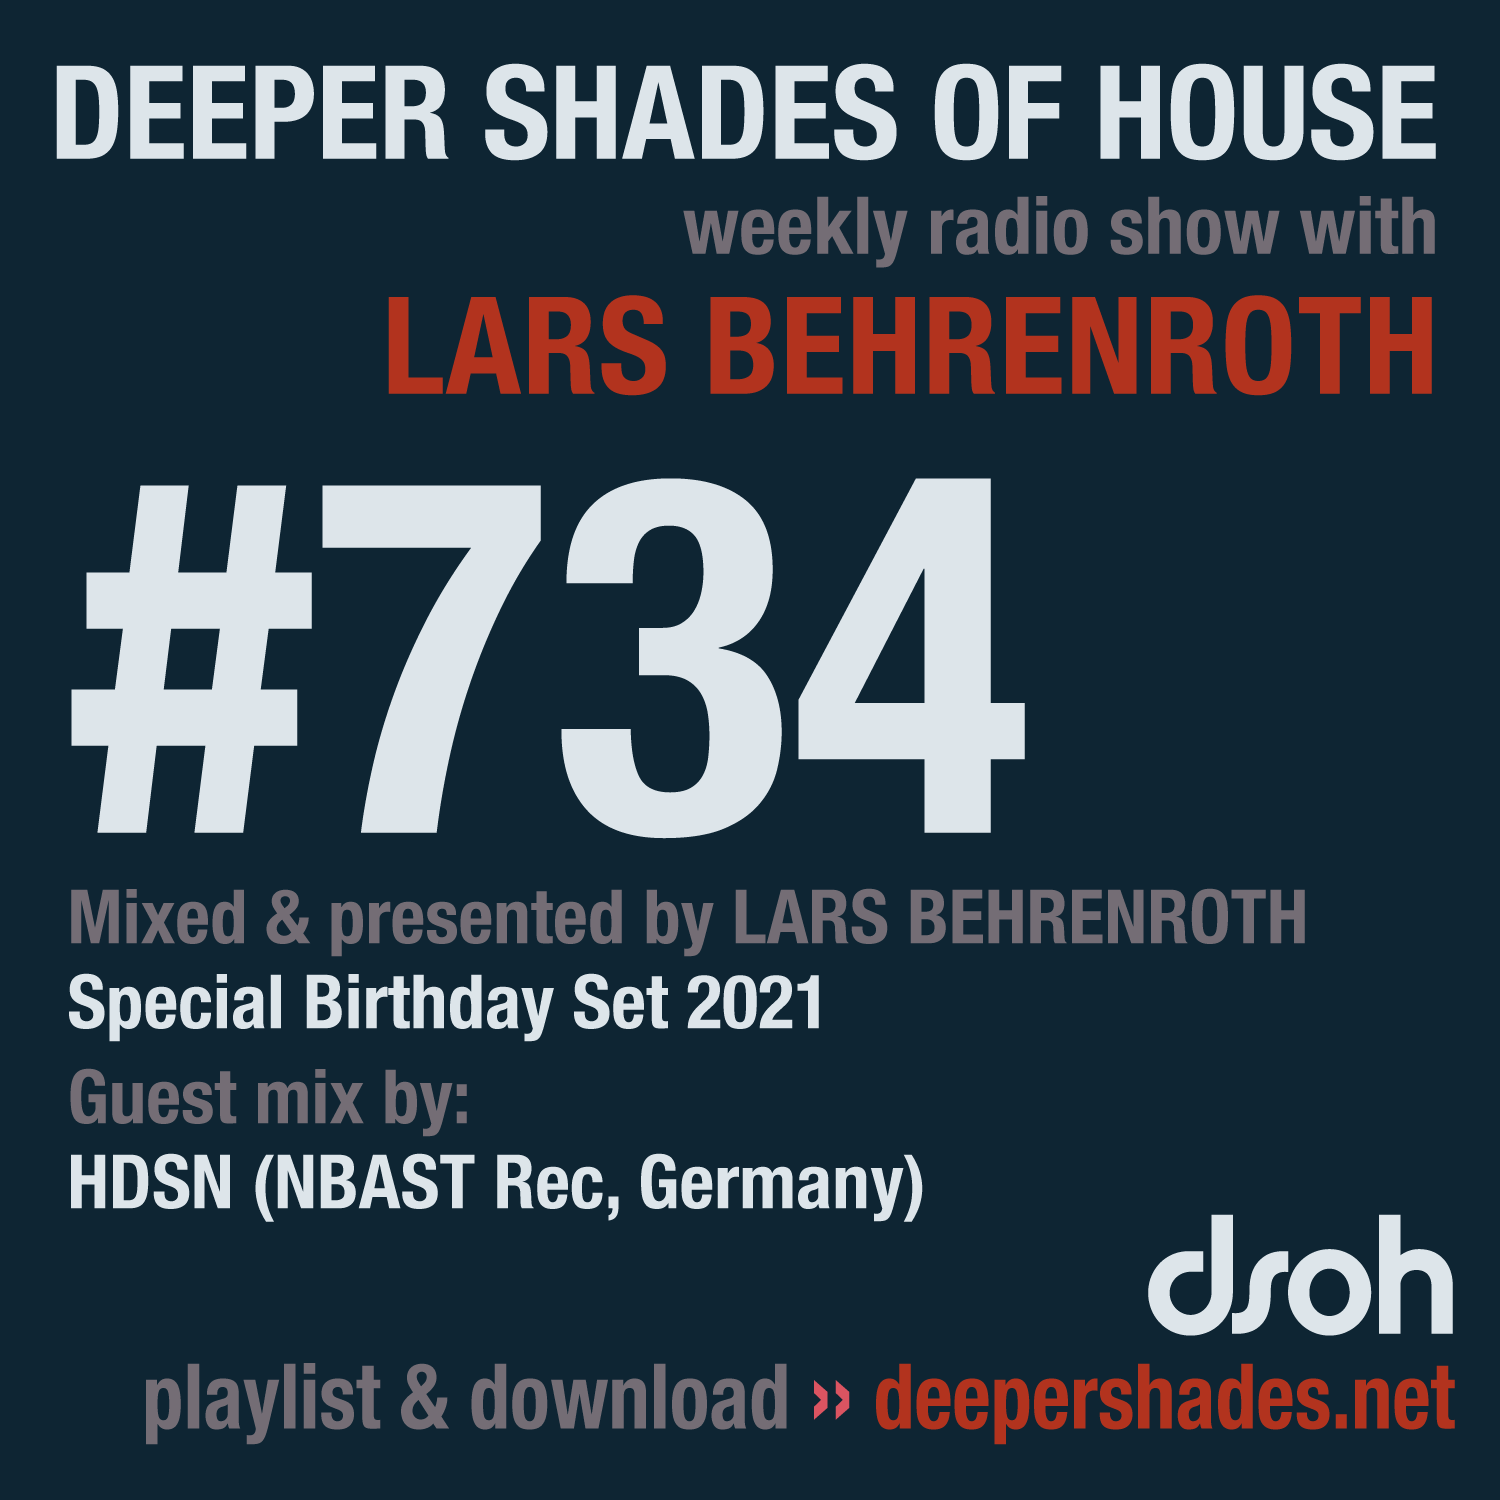 Deeper Shades Of House 734